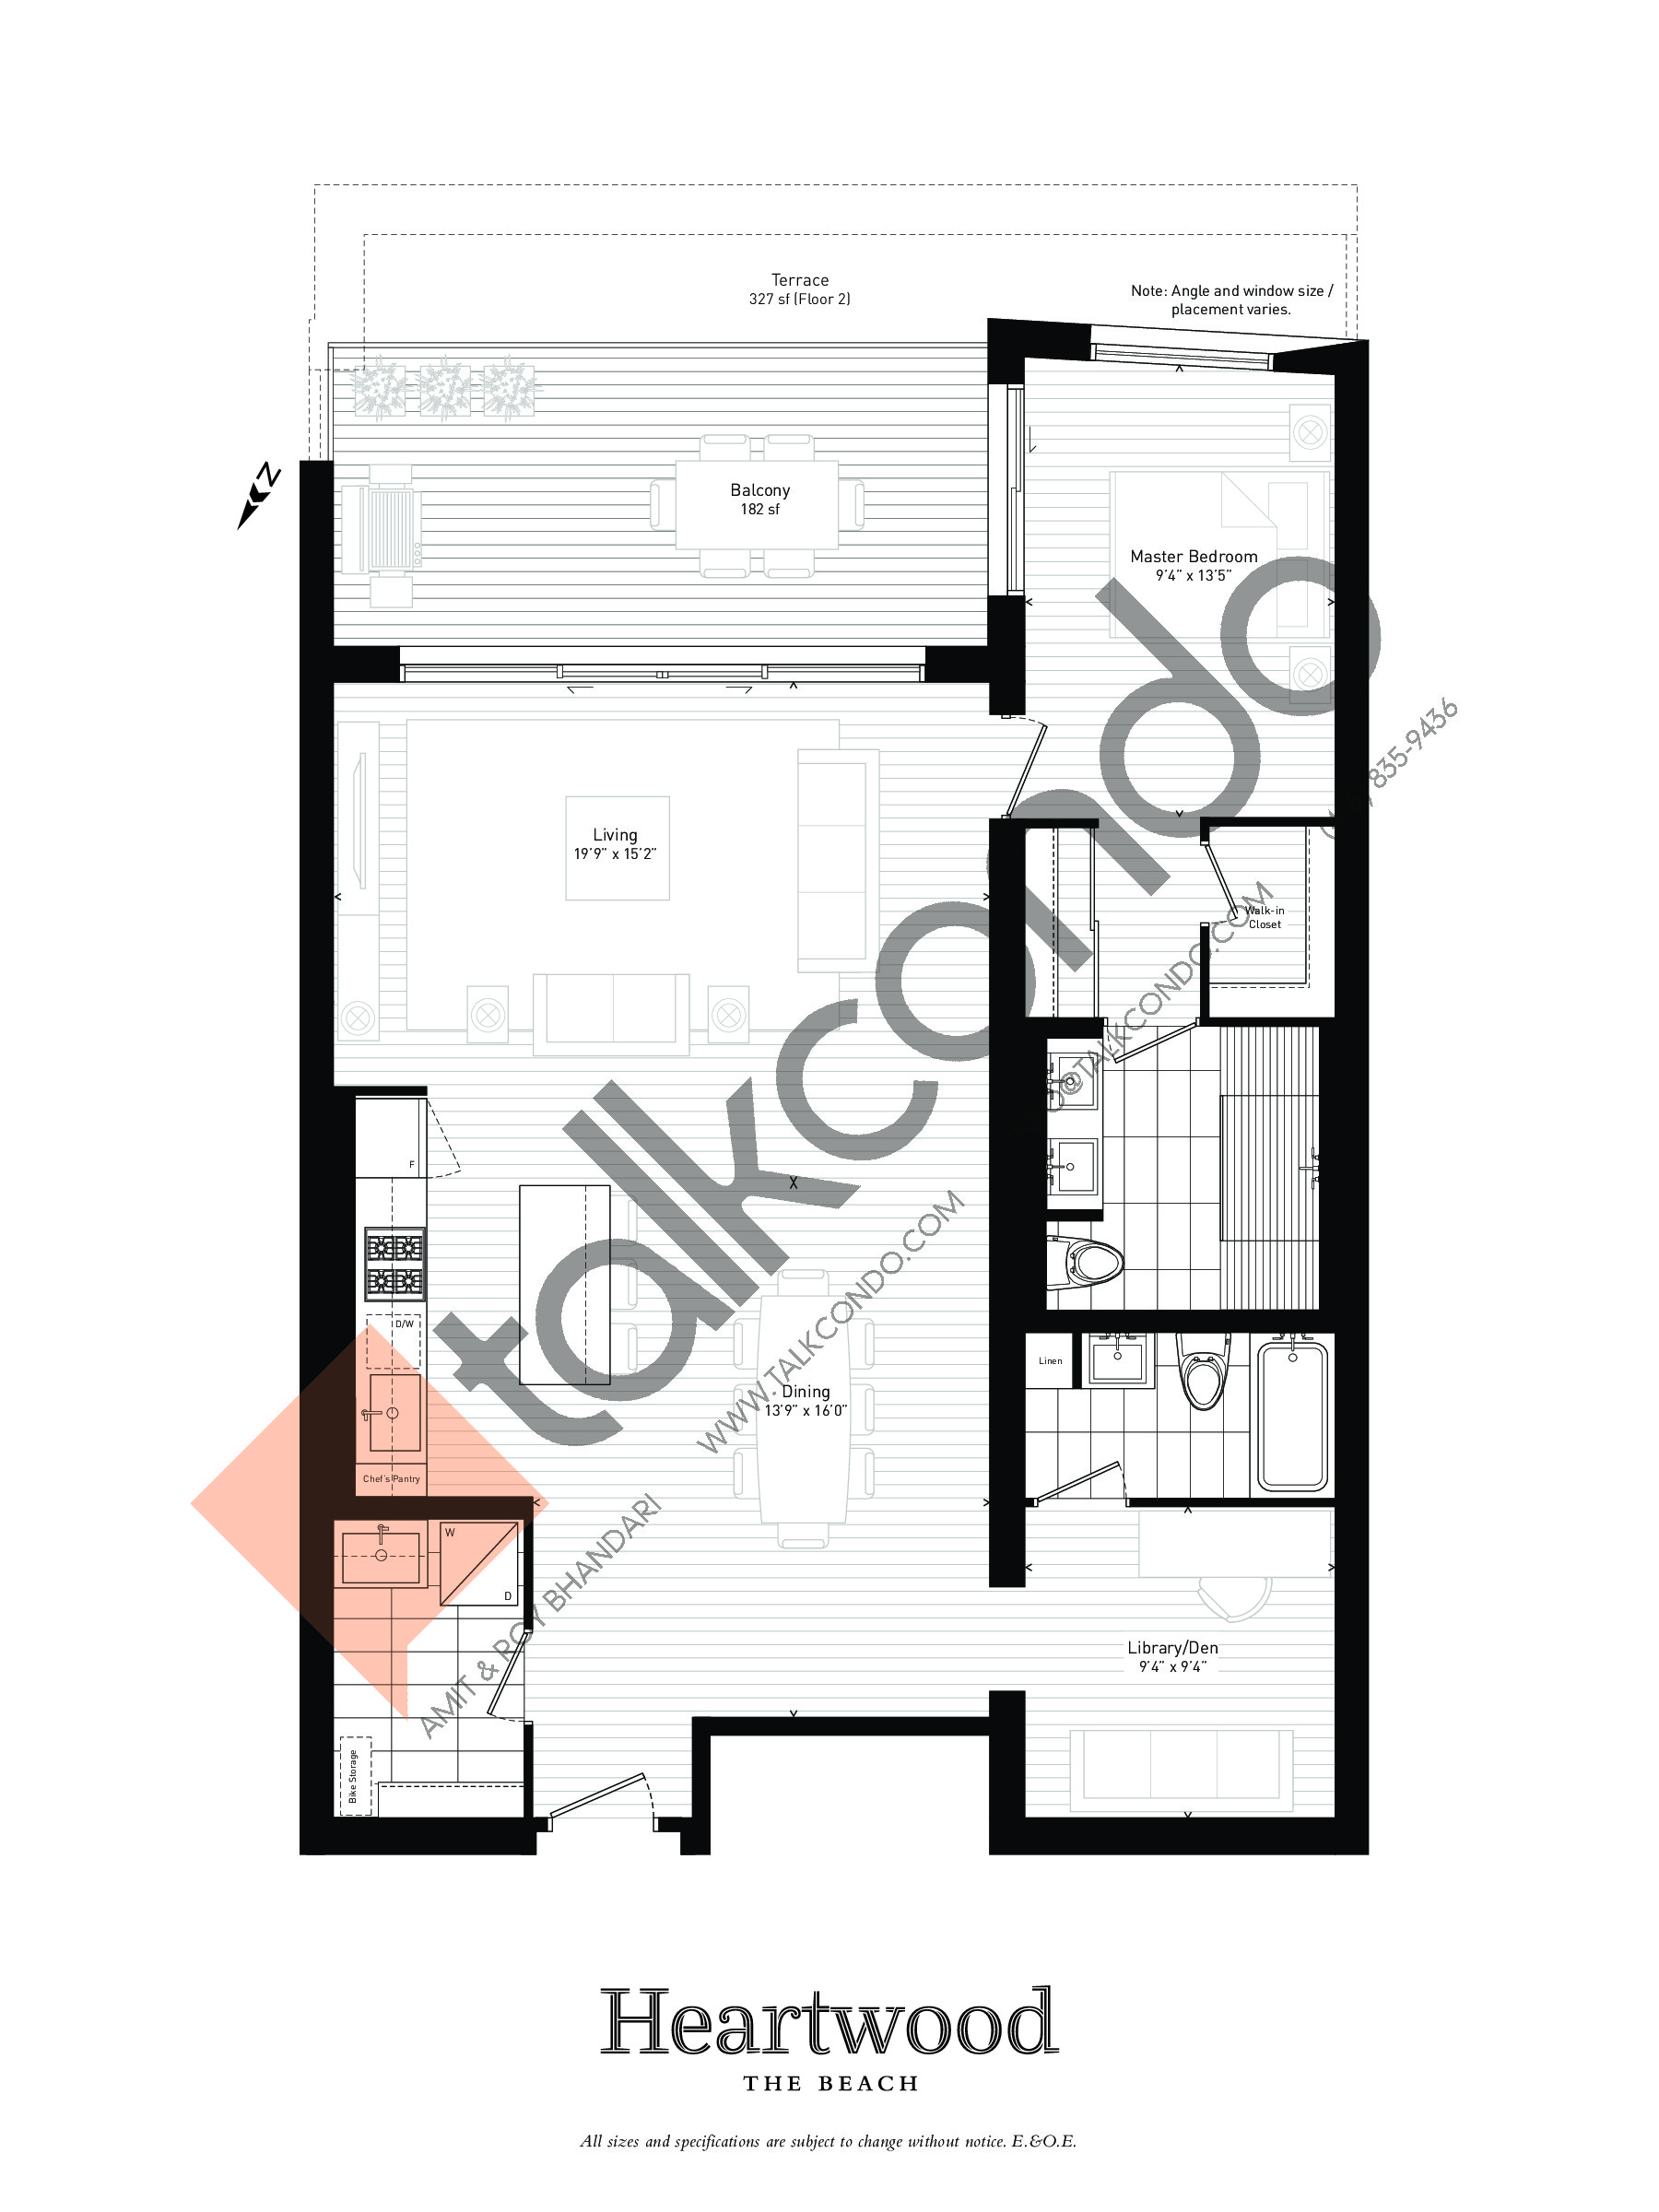 02 Floor Plan at Heartwood the Beach Condos - 1219 sq.ft